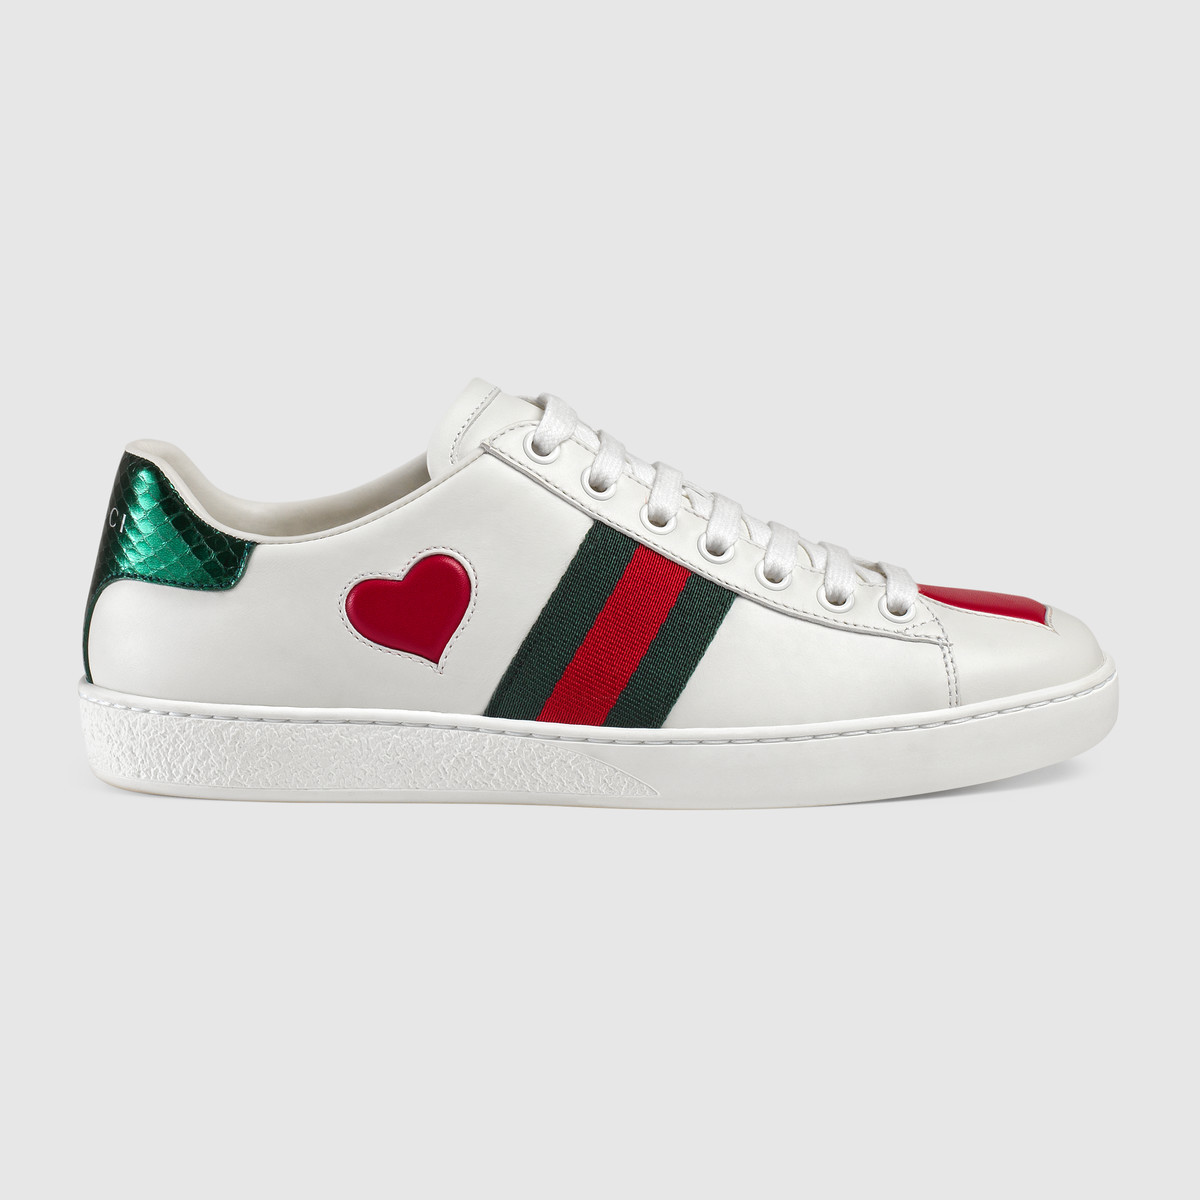 982831c74348 ... heart inlay Red ayers snake detail on the back of one shoe and green  ayers snake detail on the back of the other shoe Rubber sole Made in Italy  sz 37